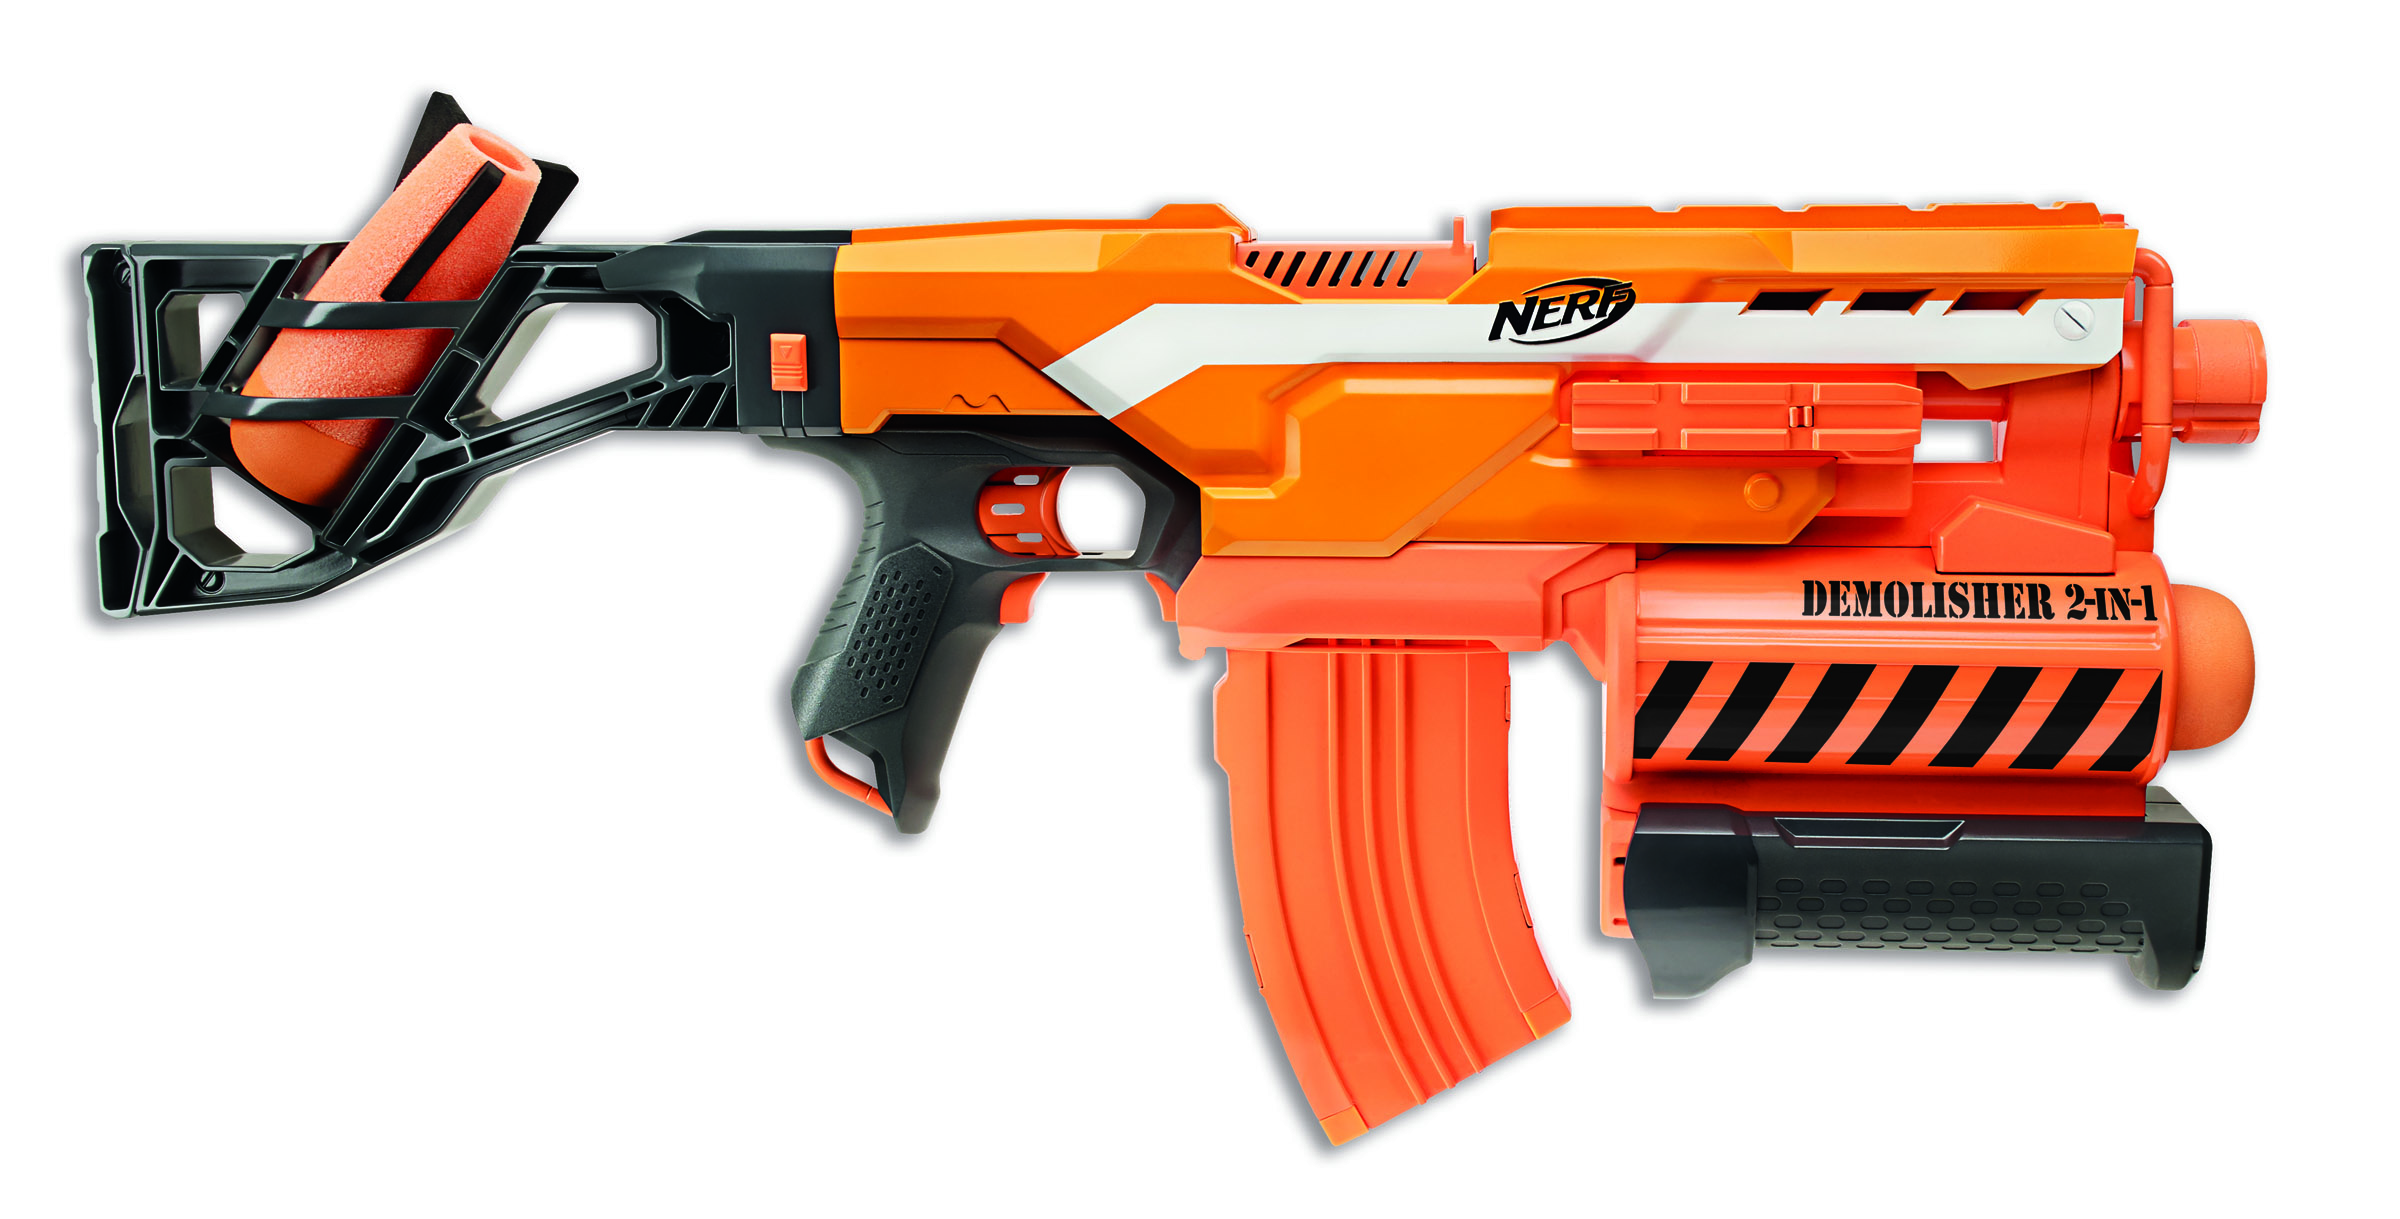 NERF-DEMOLISHER